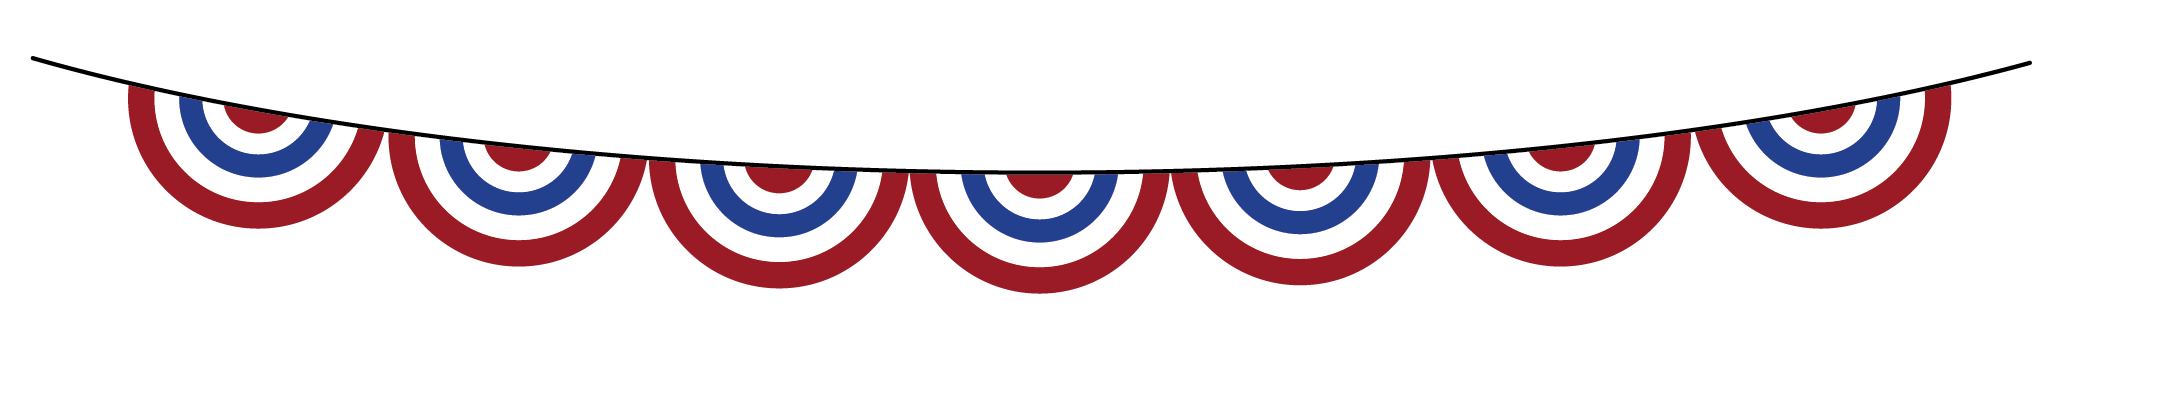 4th of July Clip Art Banner